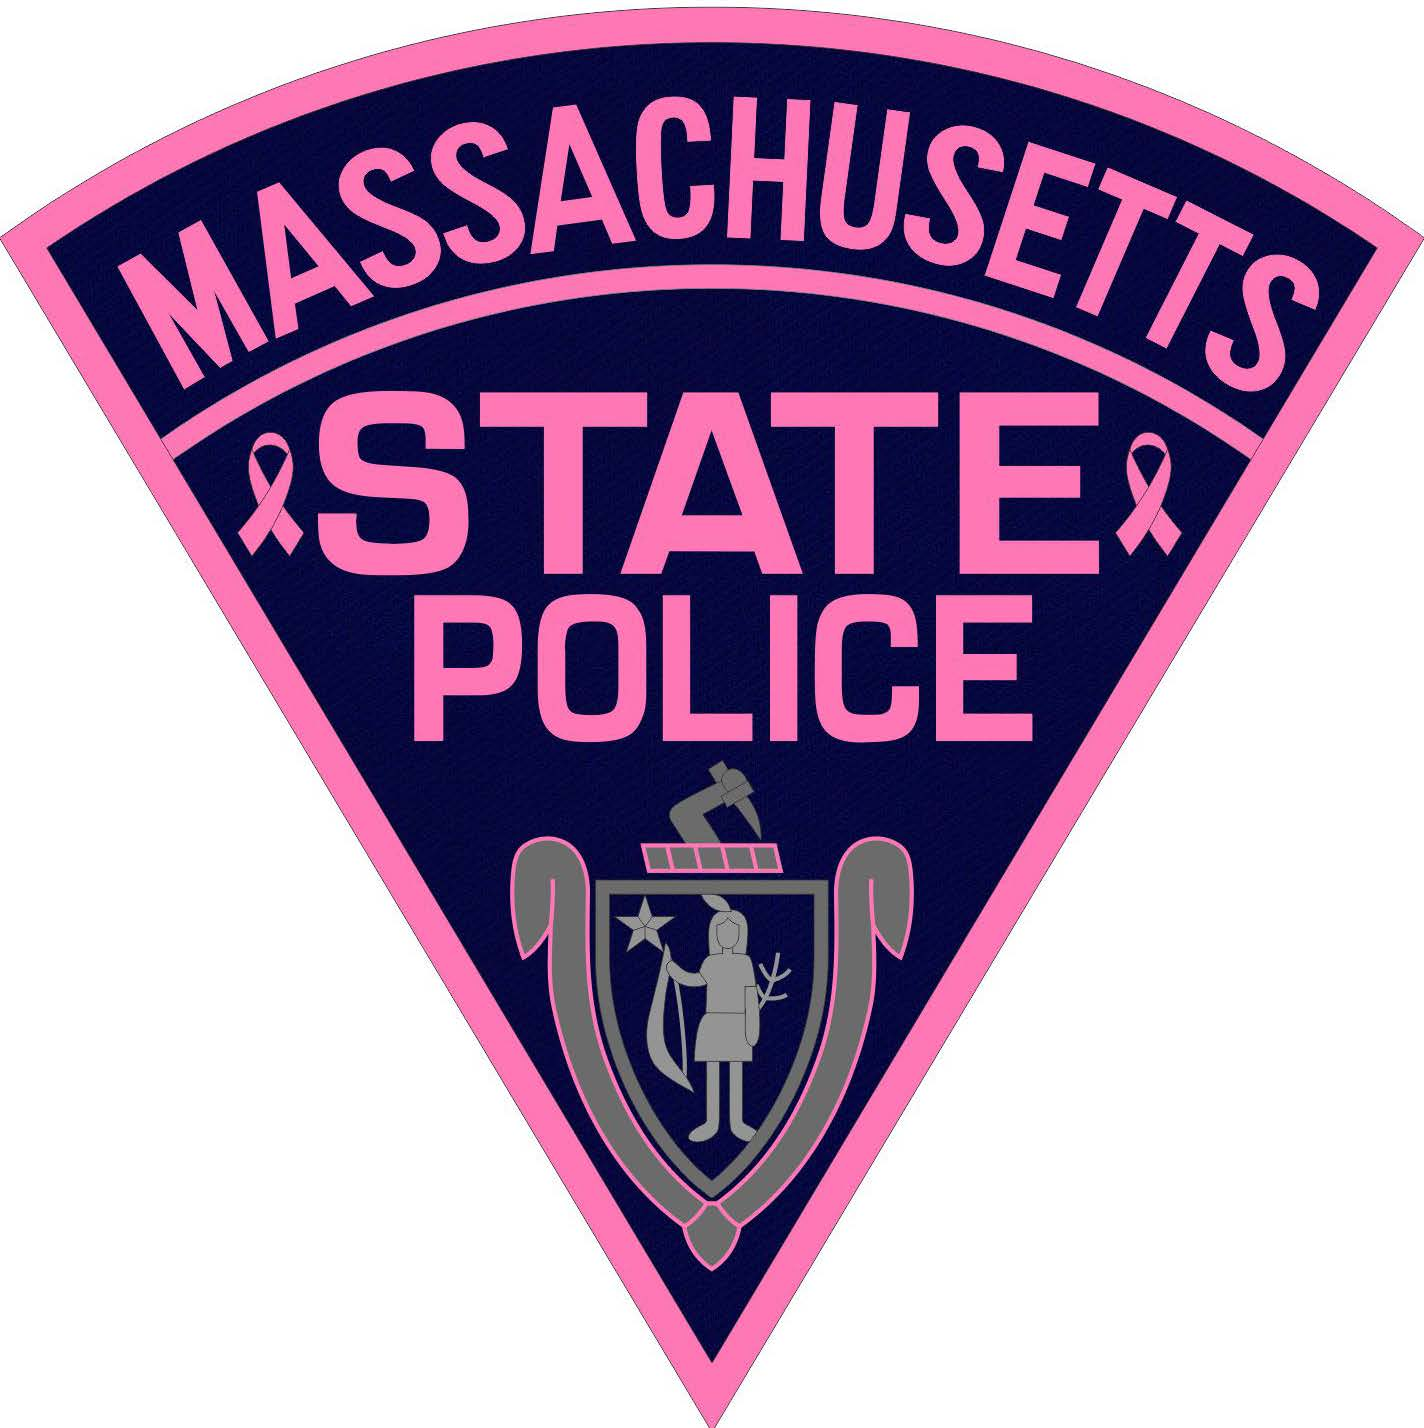 Mass State Police Artwork.jpg